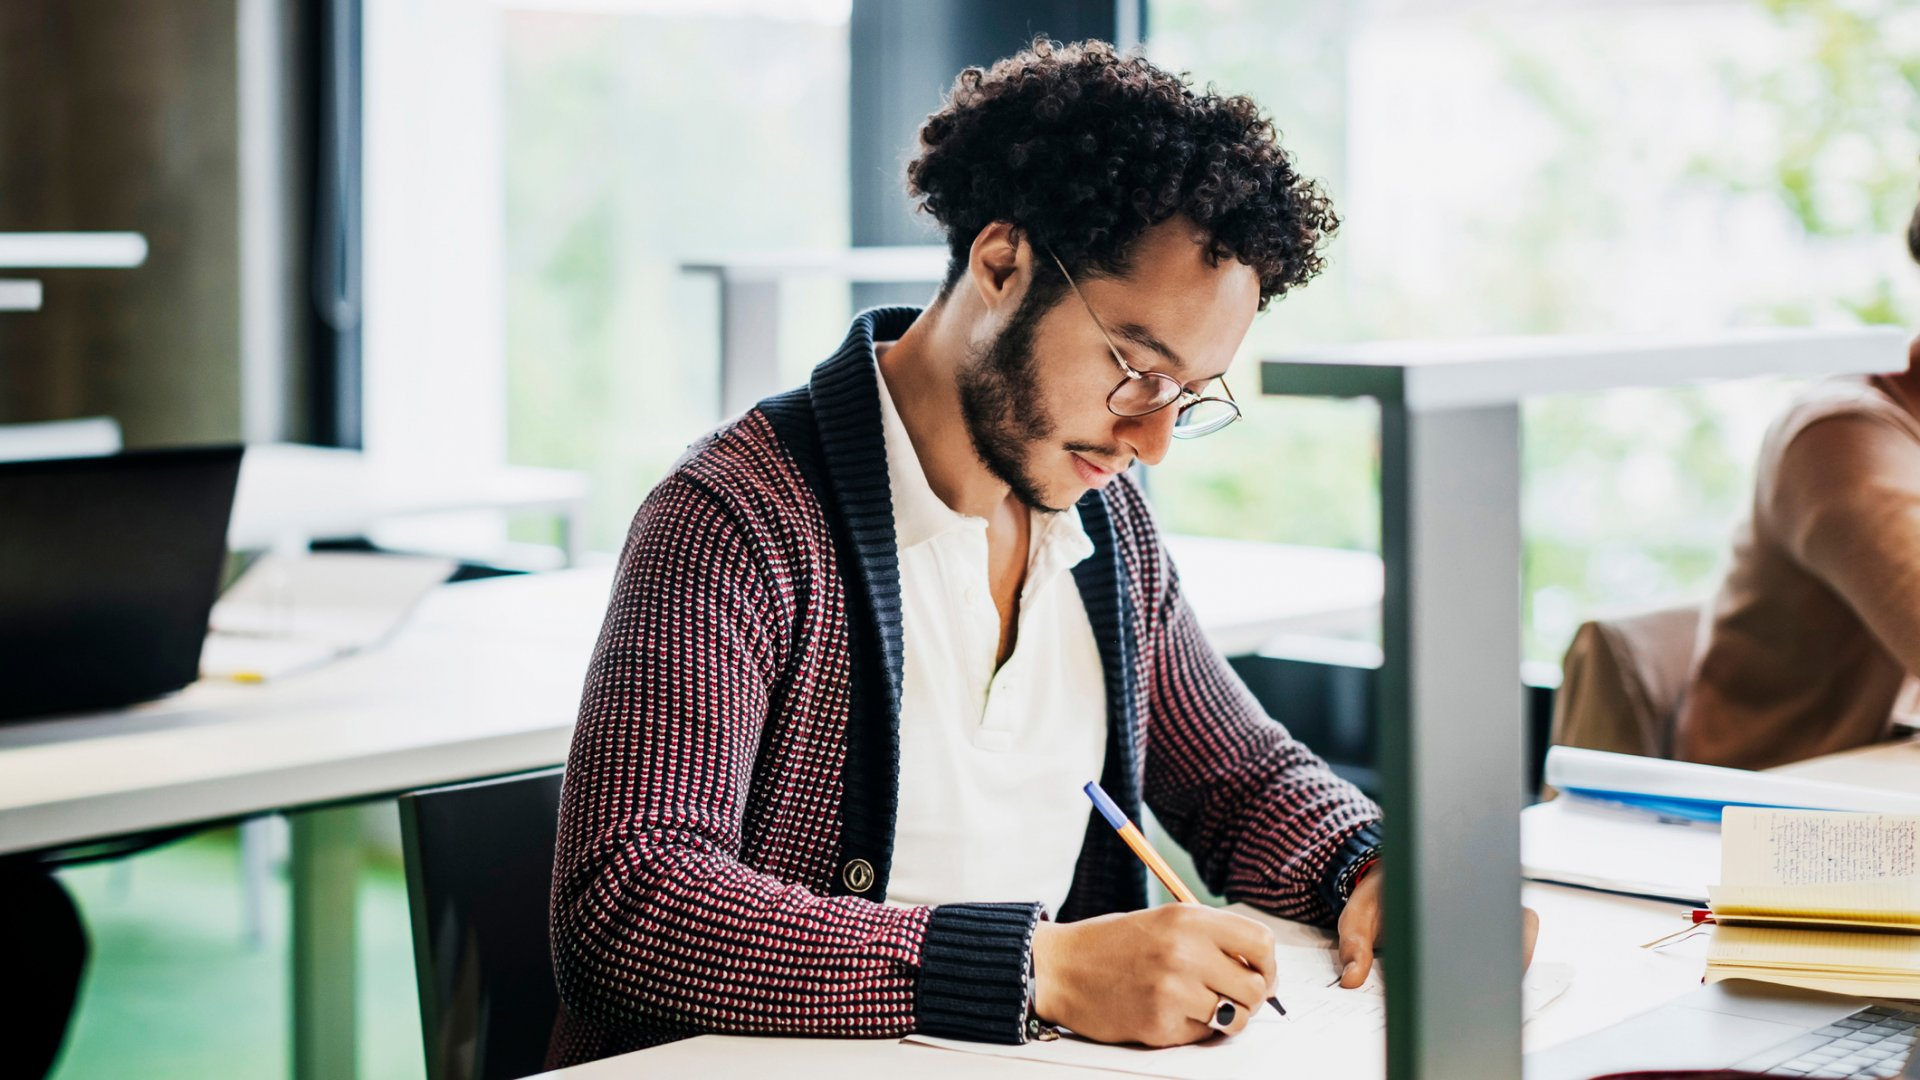 6 Reasons to Stay in School While Learning to Be an Entrepreneur